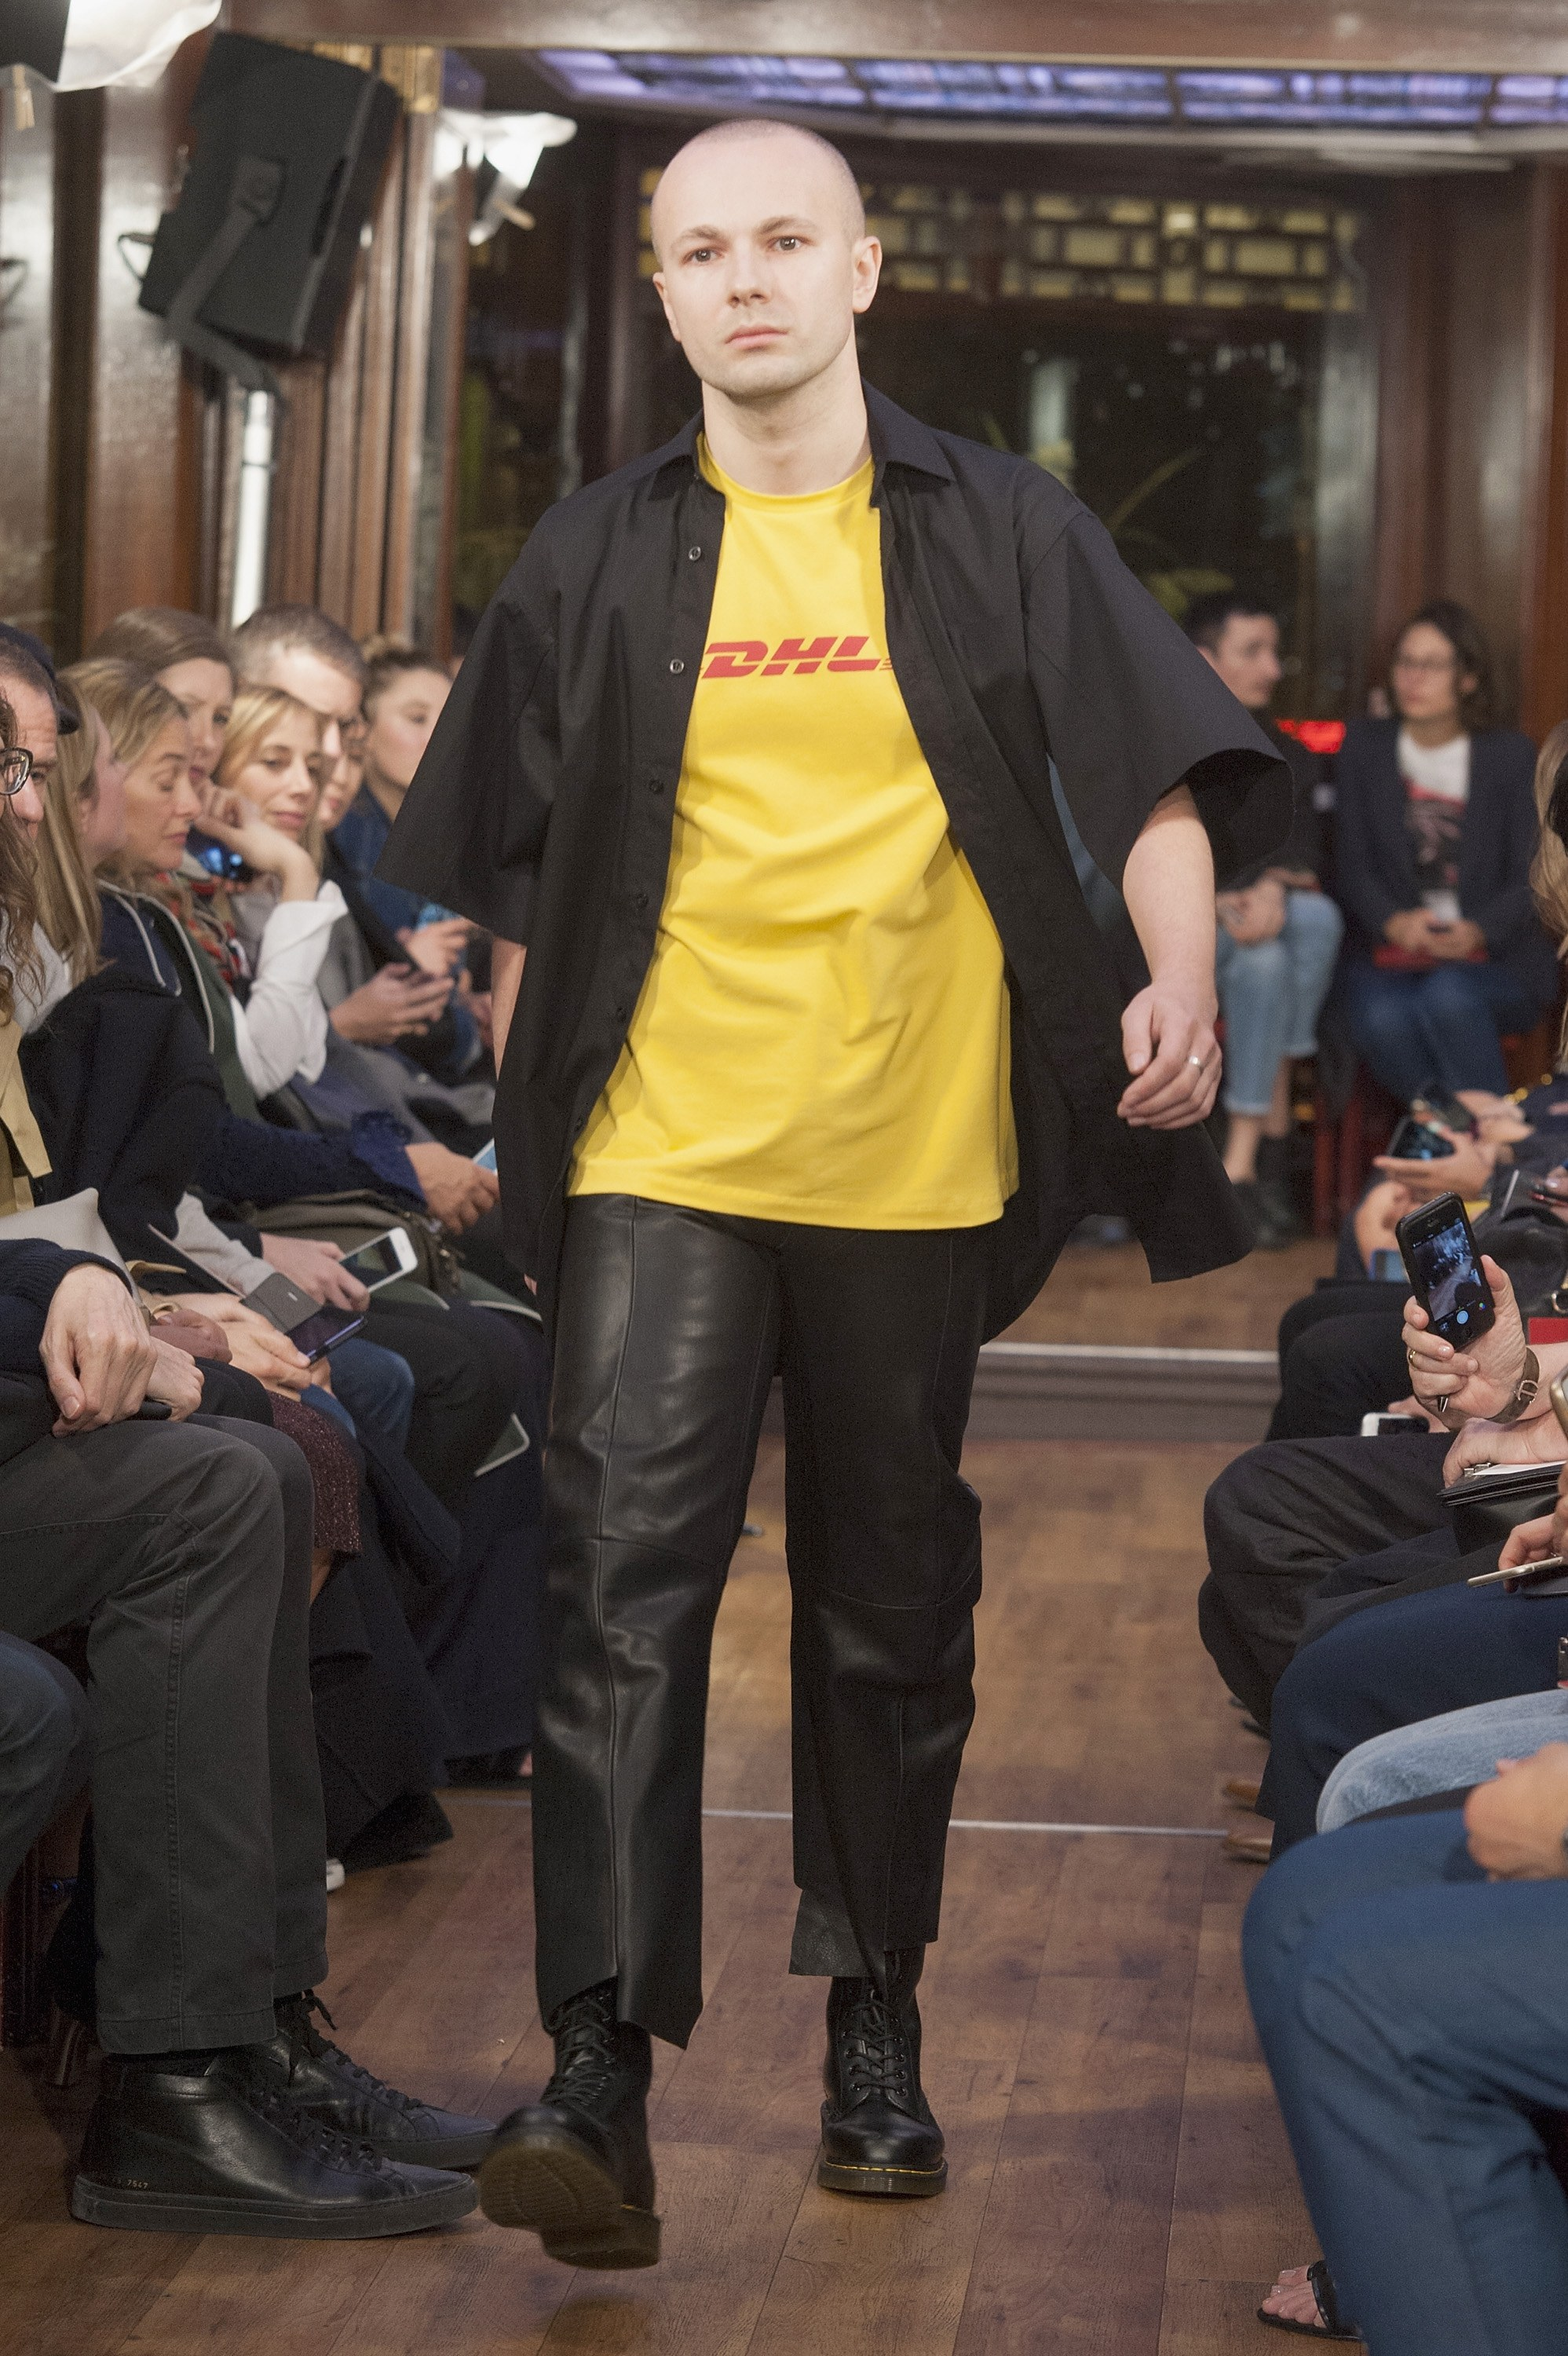 vetements-dhl.jpg